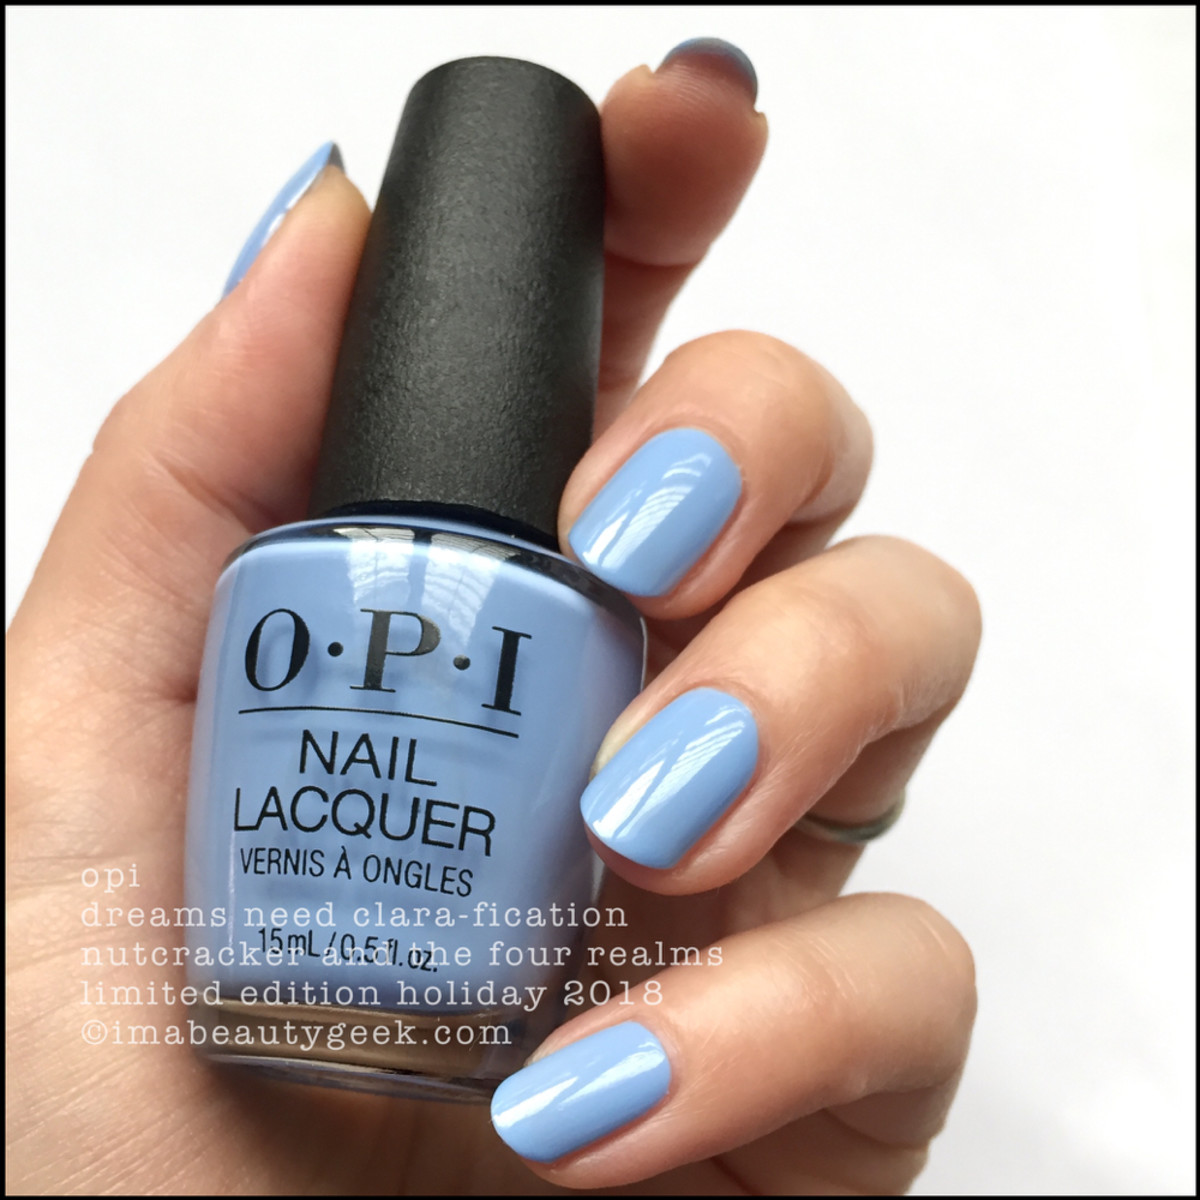 OPI Dreams Need Clara-fication - OPI Nutcracker Holiday 2018